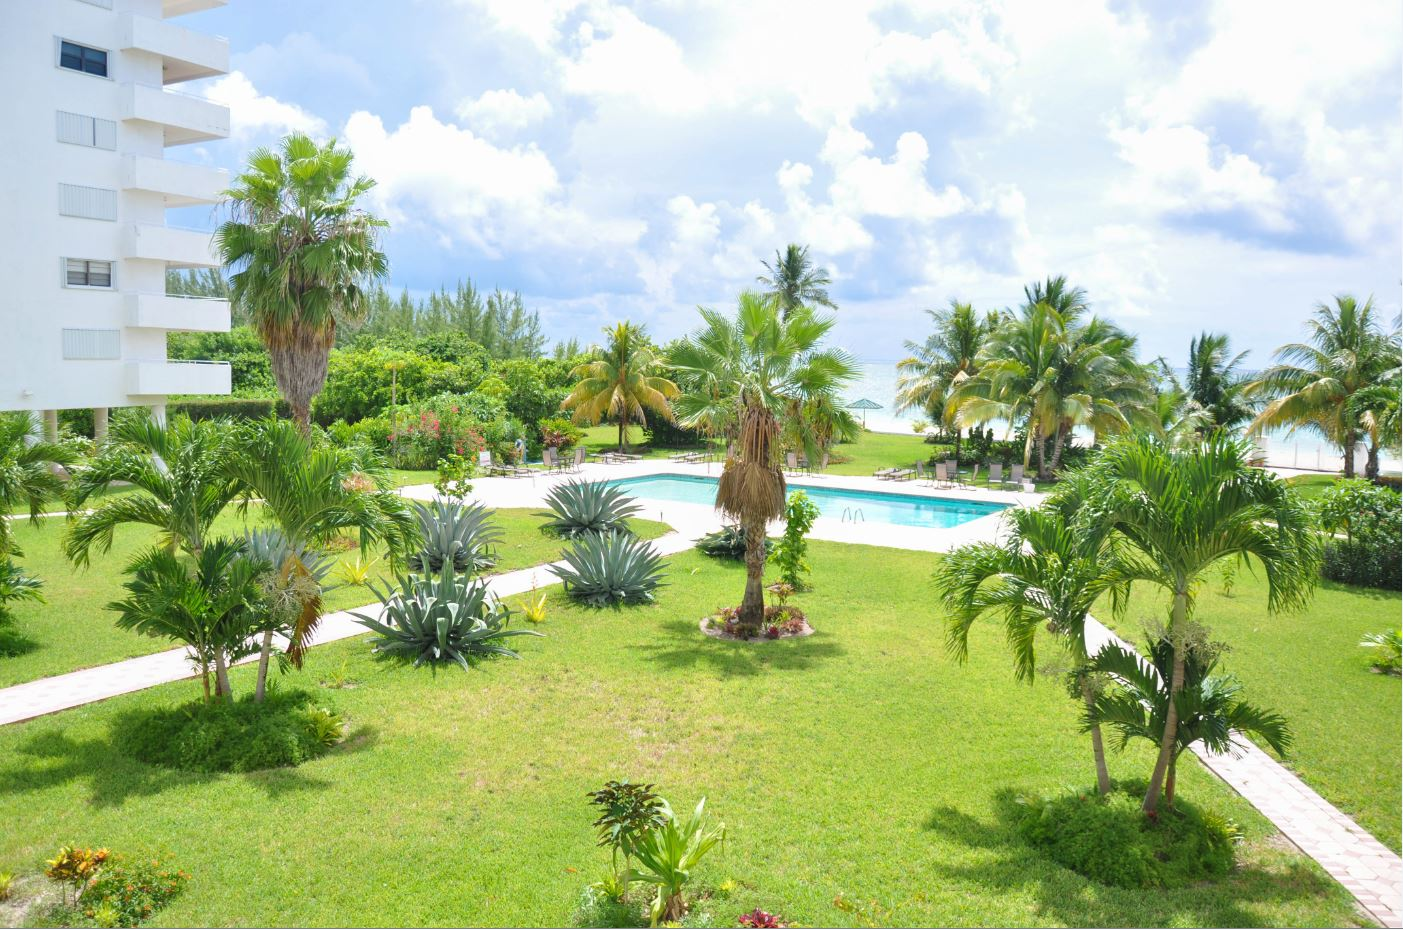 Charming Silverpoint Condo for Rent, Grand Bahama/Freeport, BS